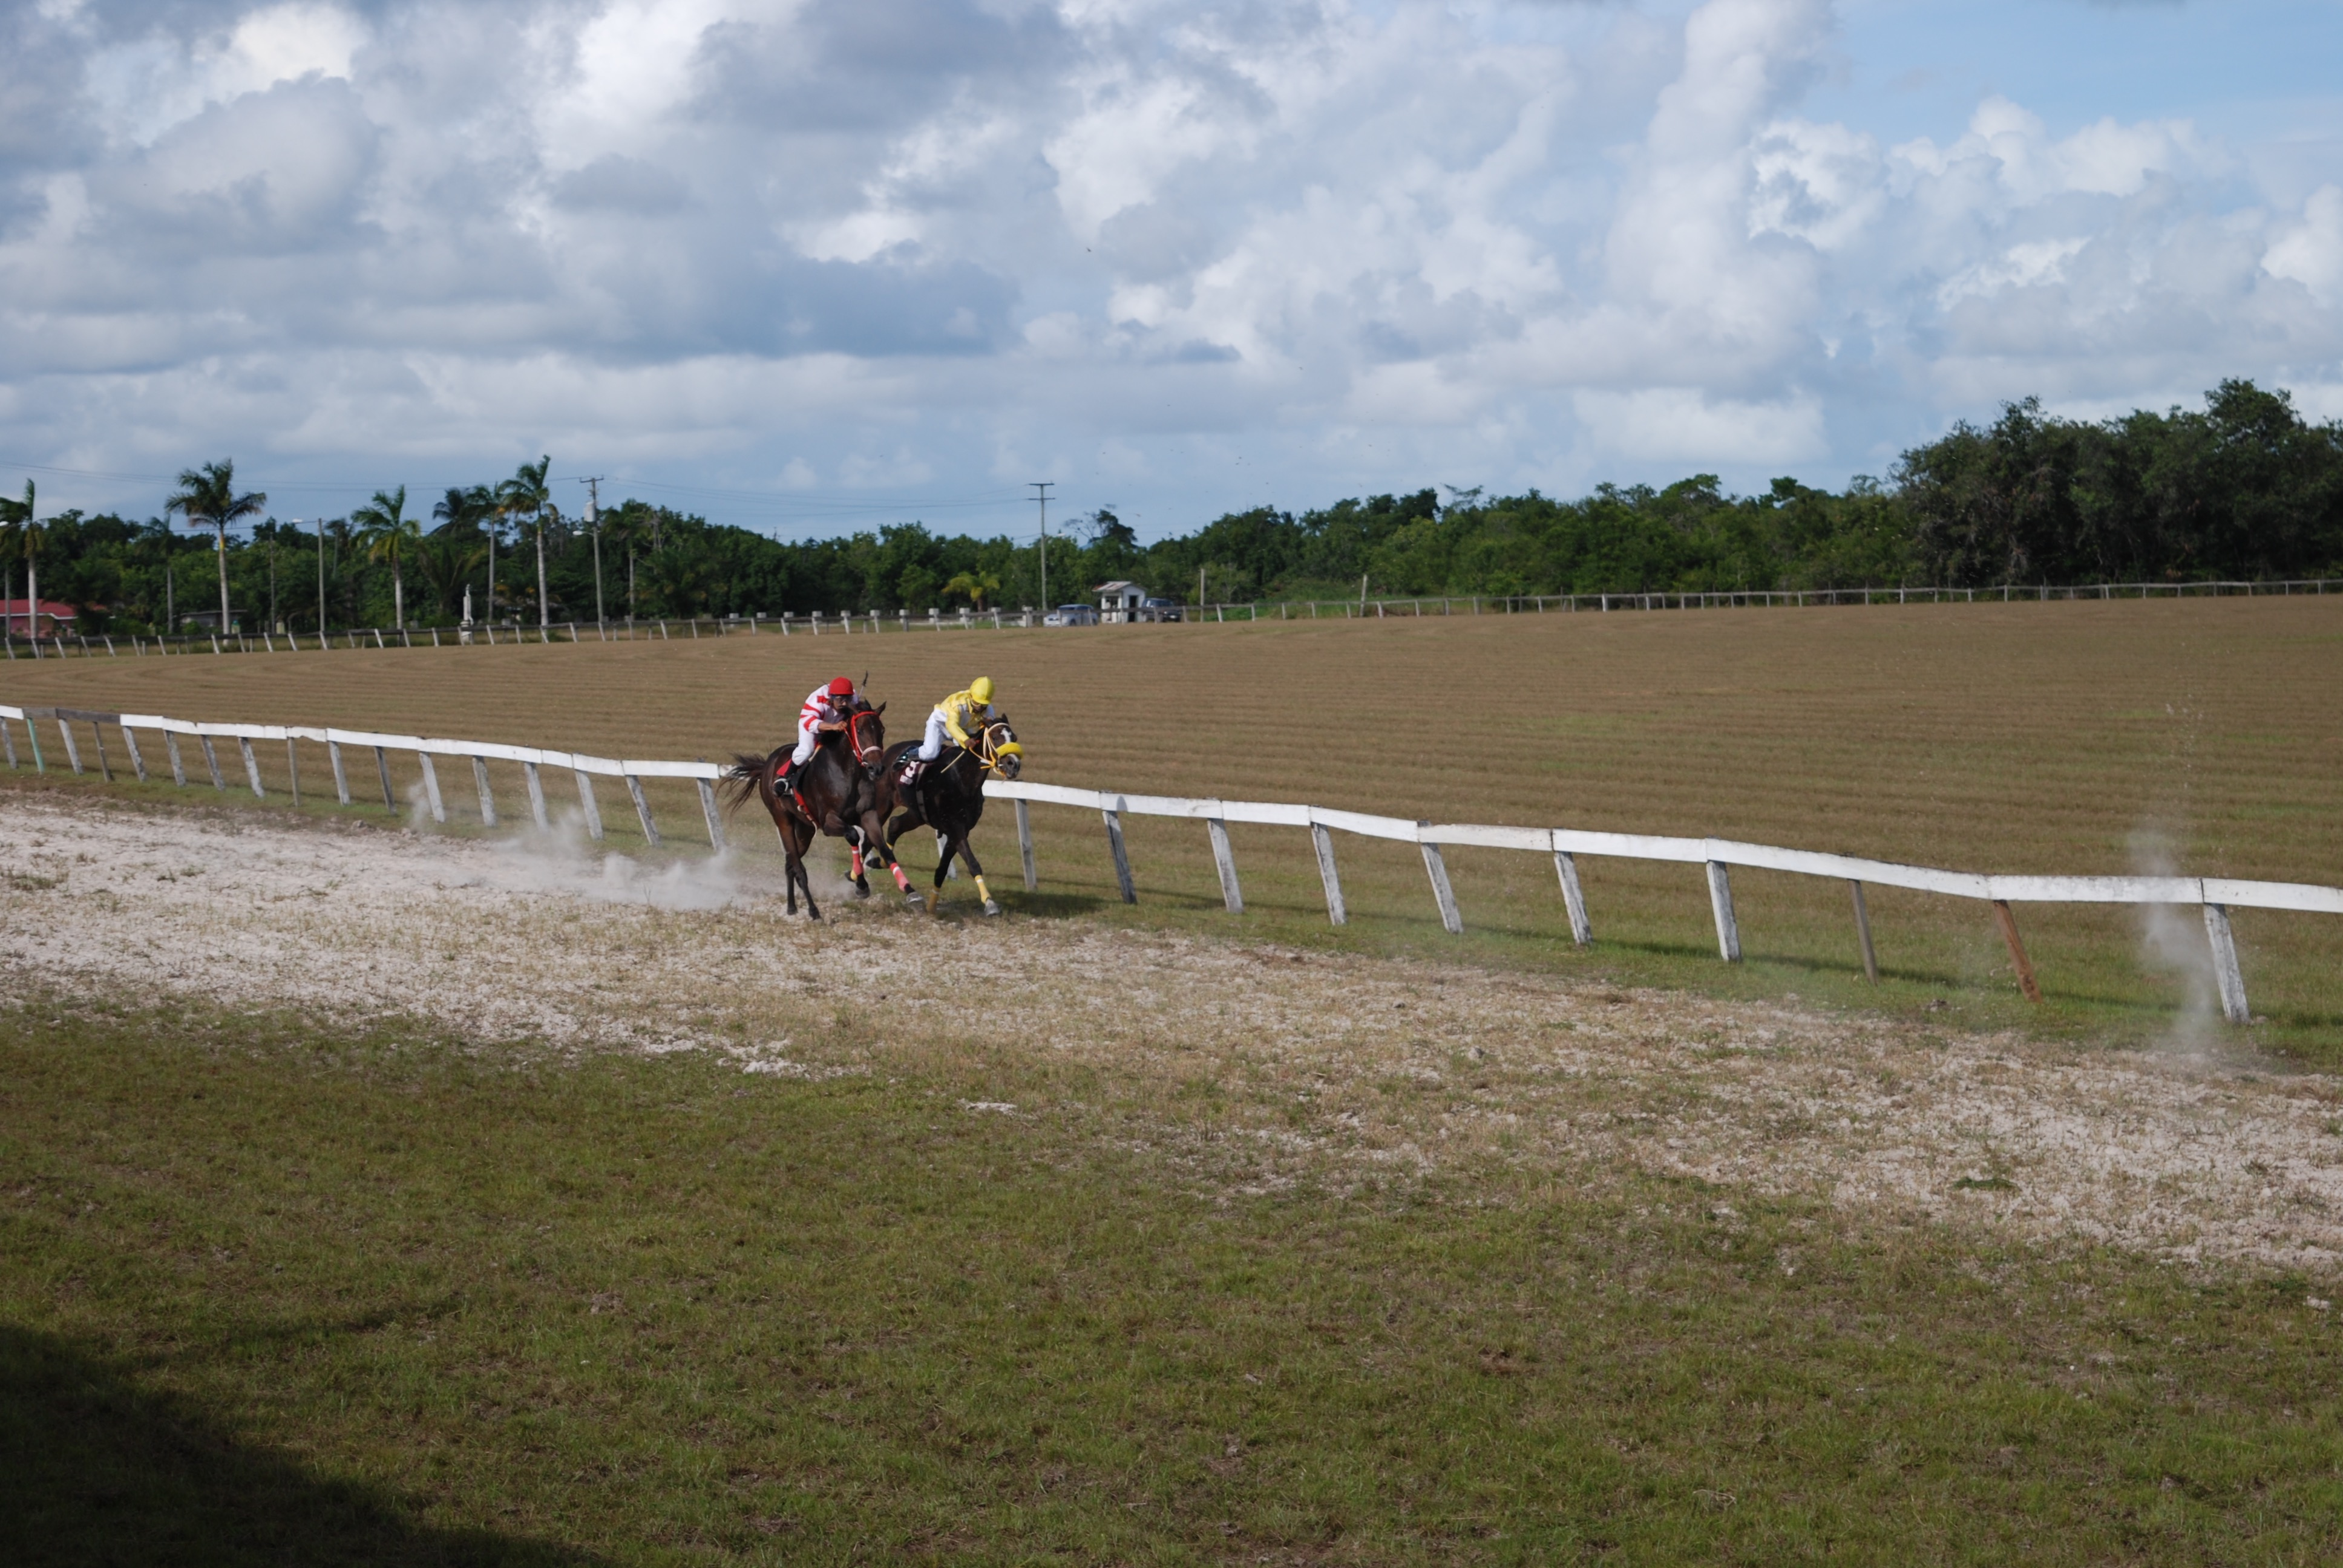 https://horseracingbelize.com/Duke and Wild Again finished third and fourth.